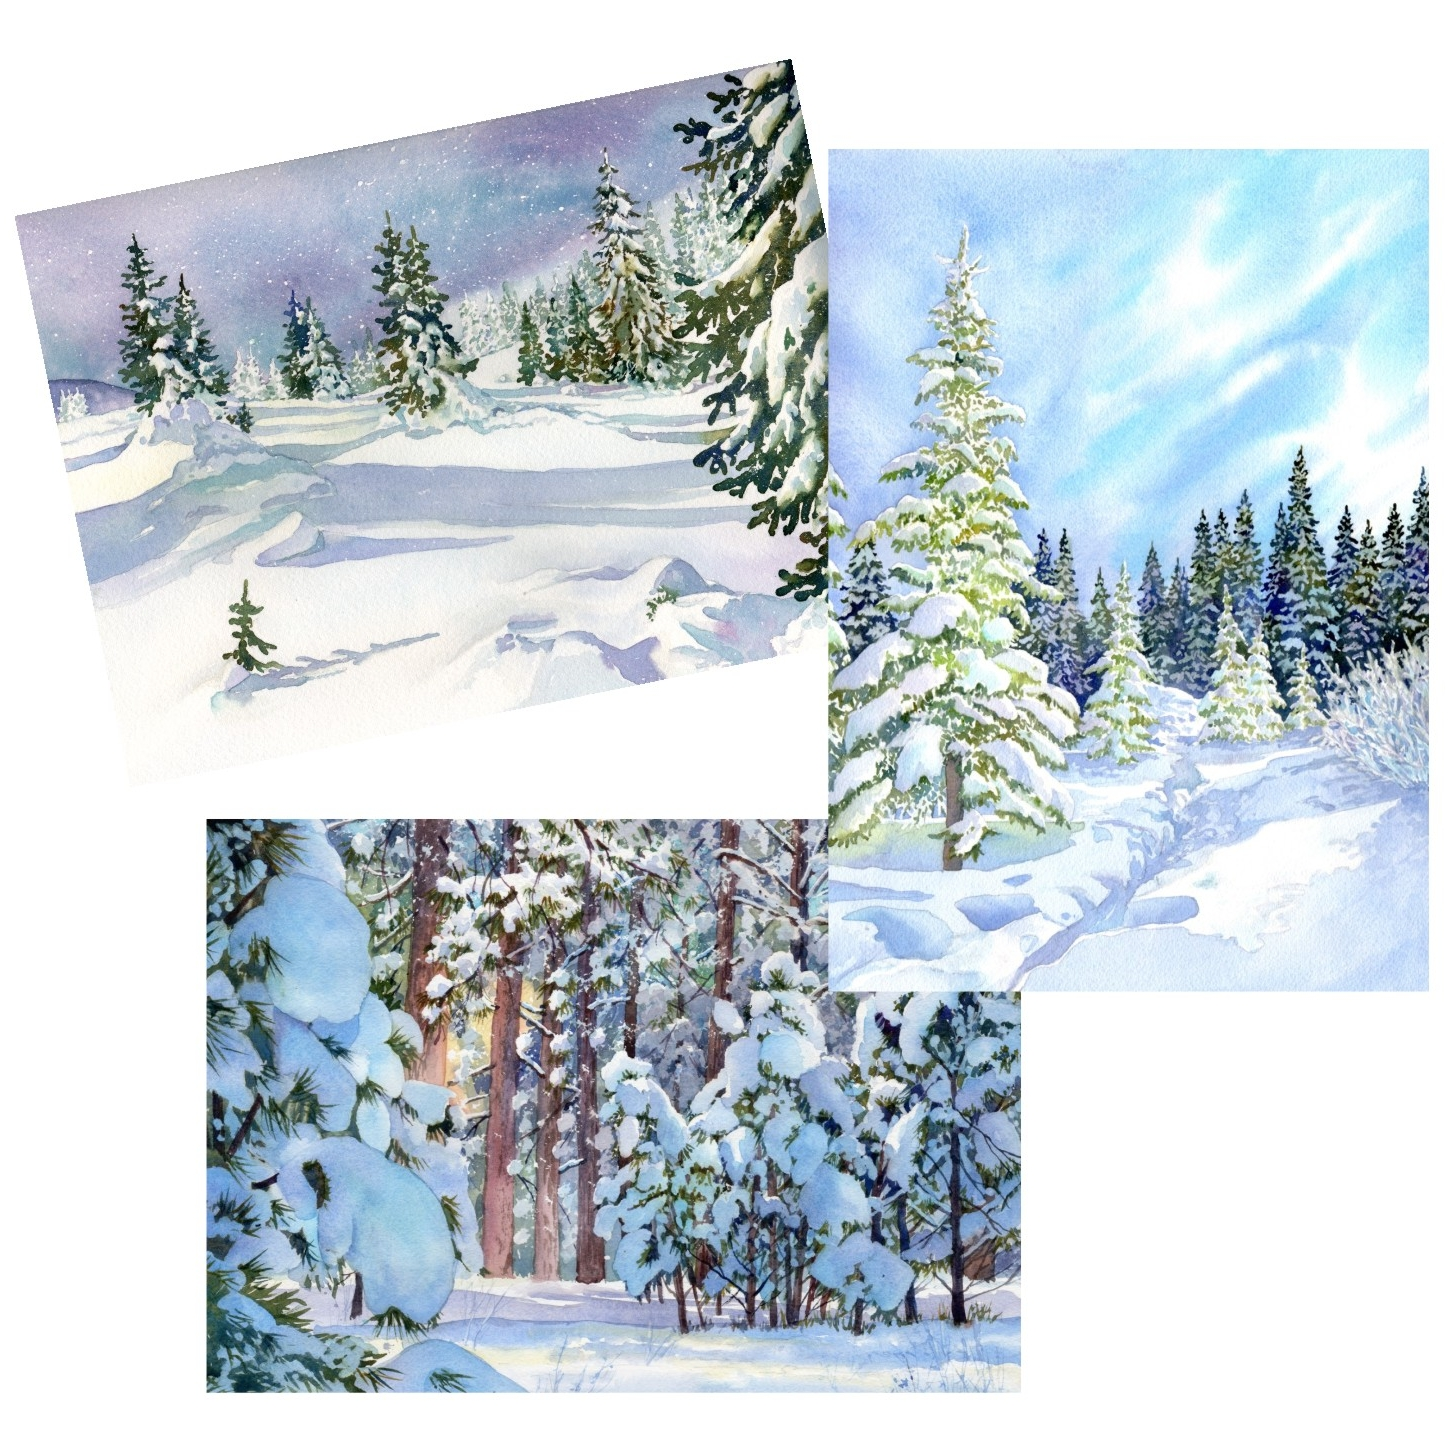 blank-note-cards-snow-scene-prints-lorraine-watry